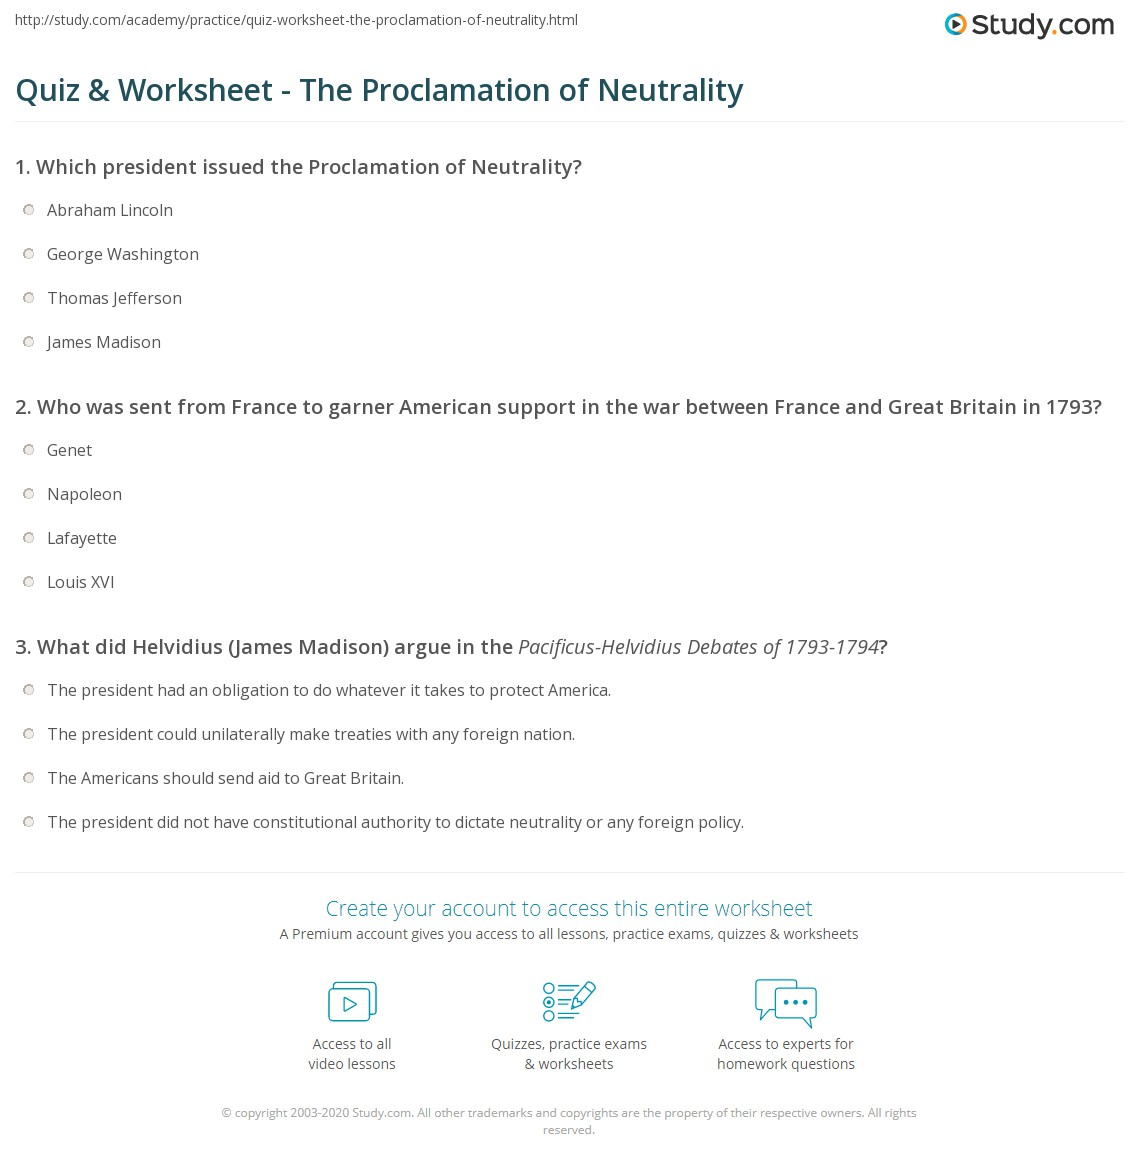 Quiz & Worksheet - The Proclamation of Neutrality | Study.com